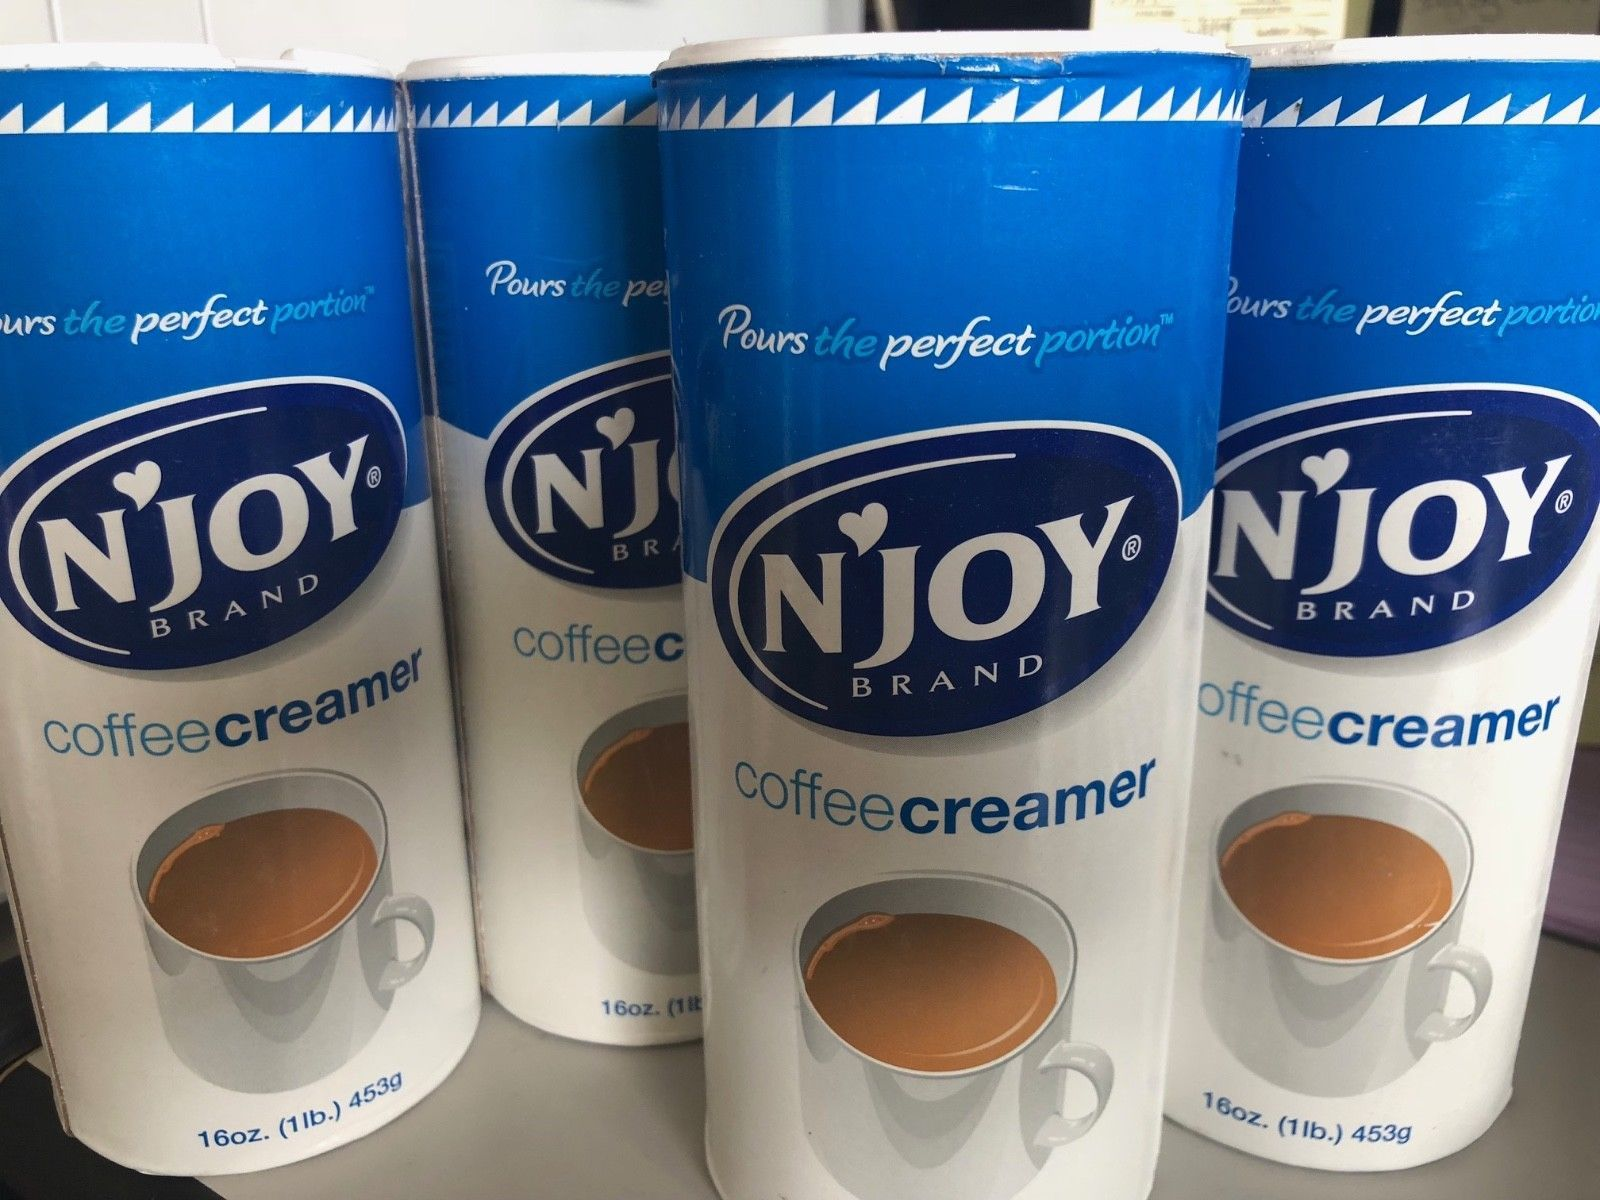 Details about NEW 4 Pack Coffee Creamer 16oz. NonDairy